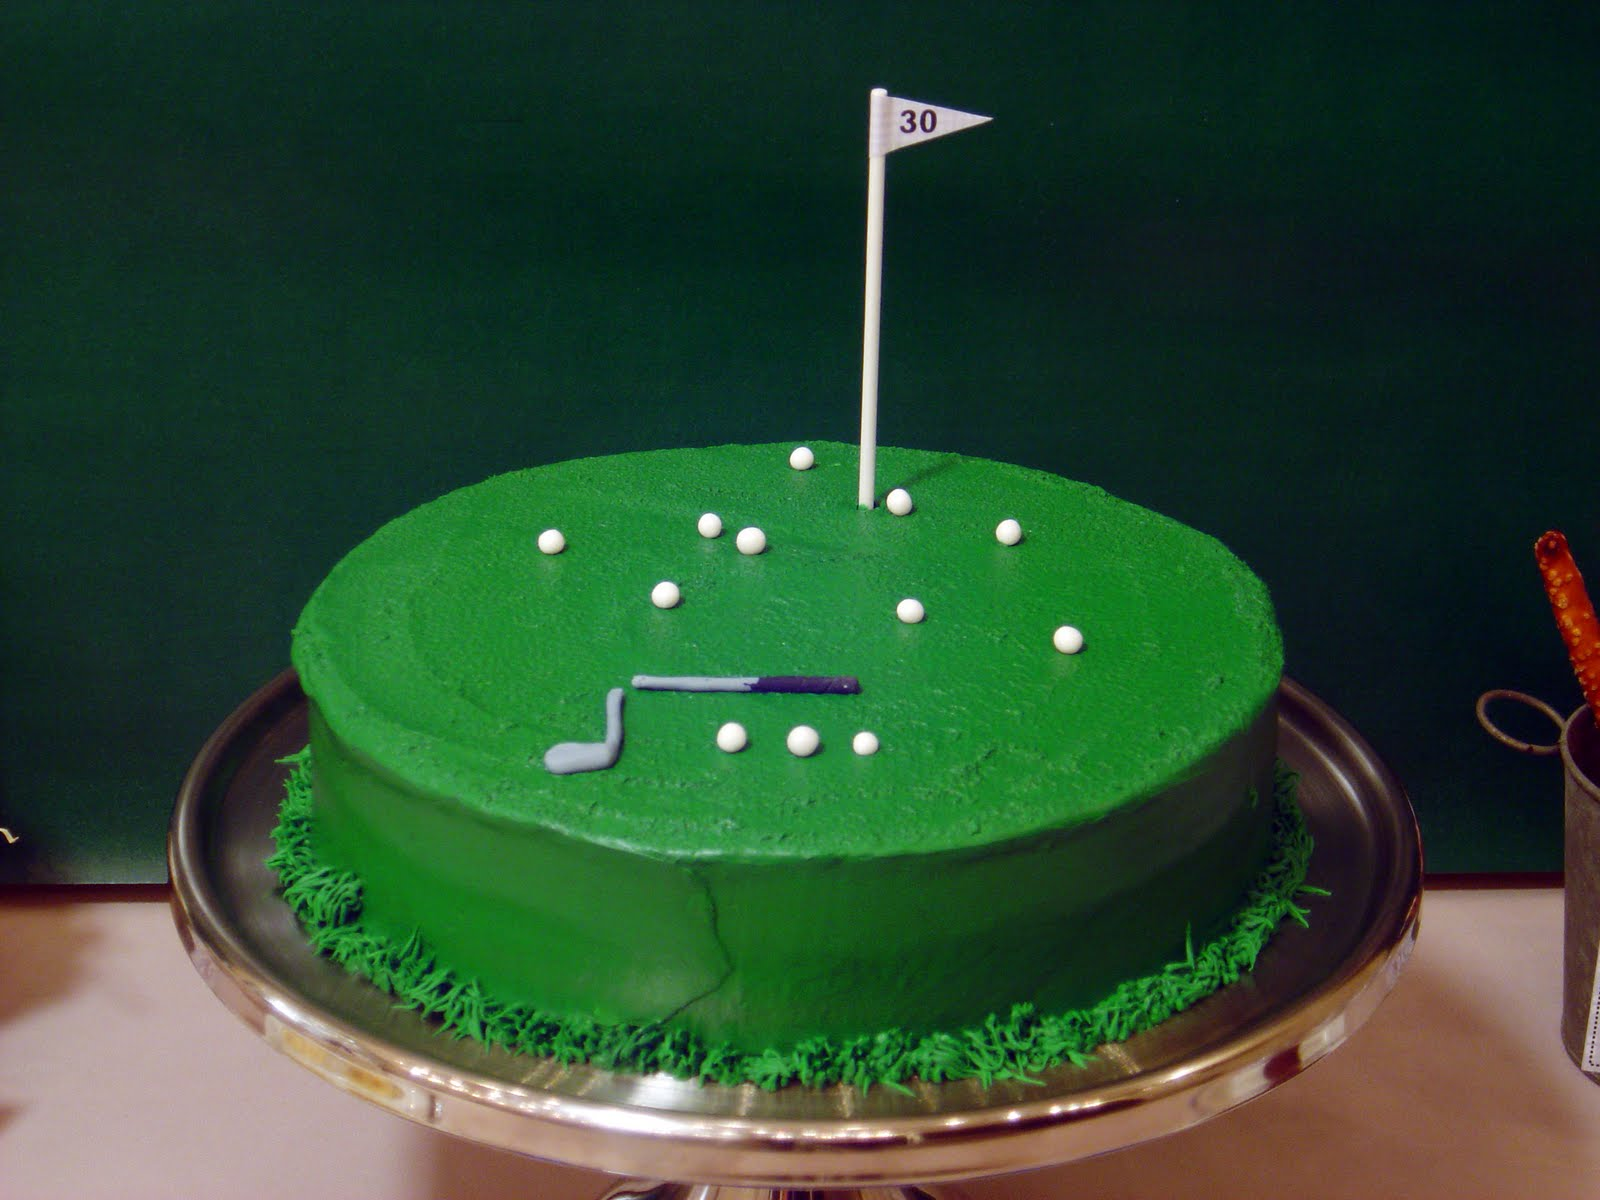 Cake Creative Co Real Parties A Hole In One Golfing Party